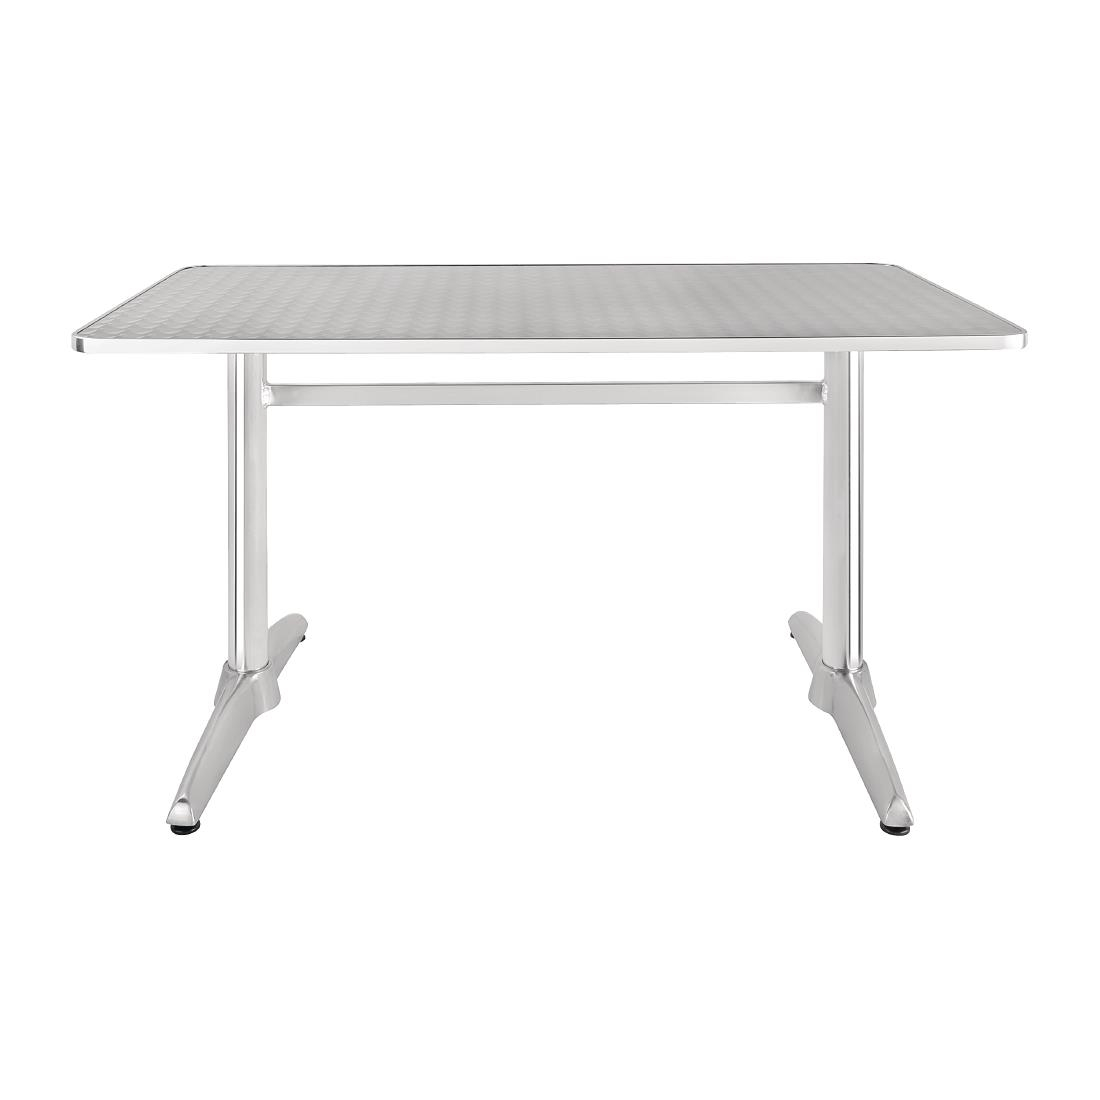 Double Pedestal Stainless Steel Table